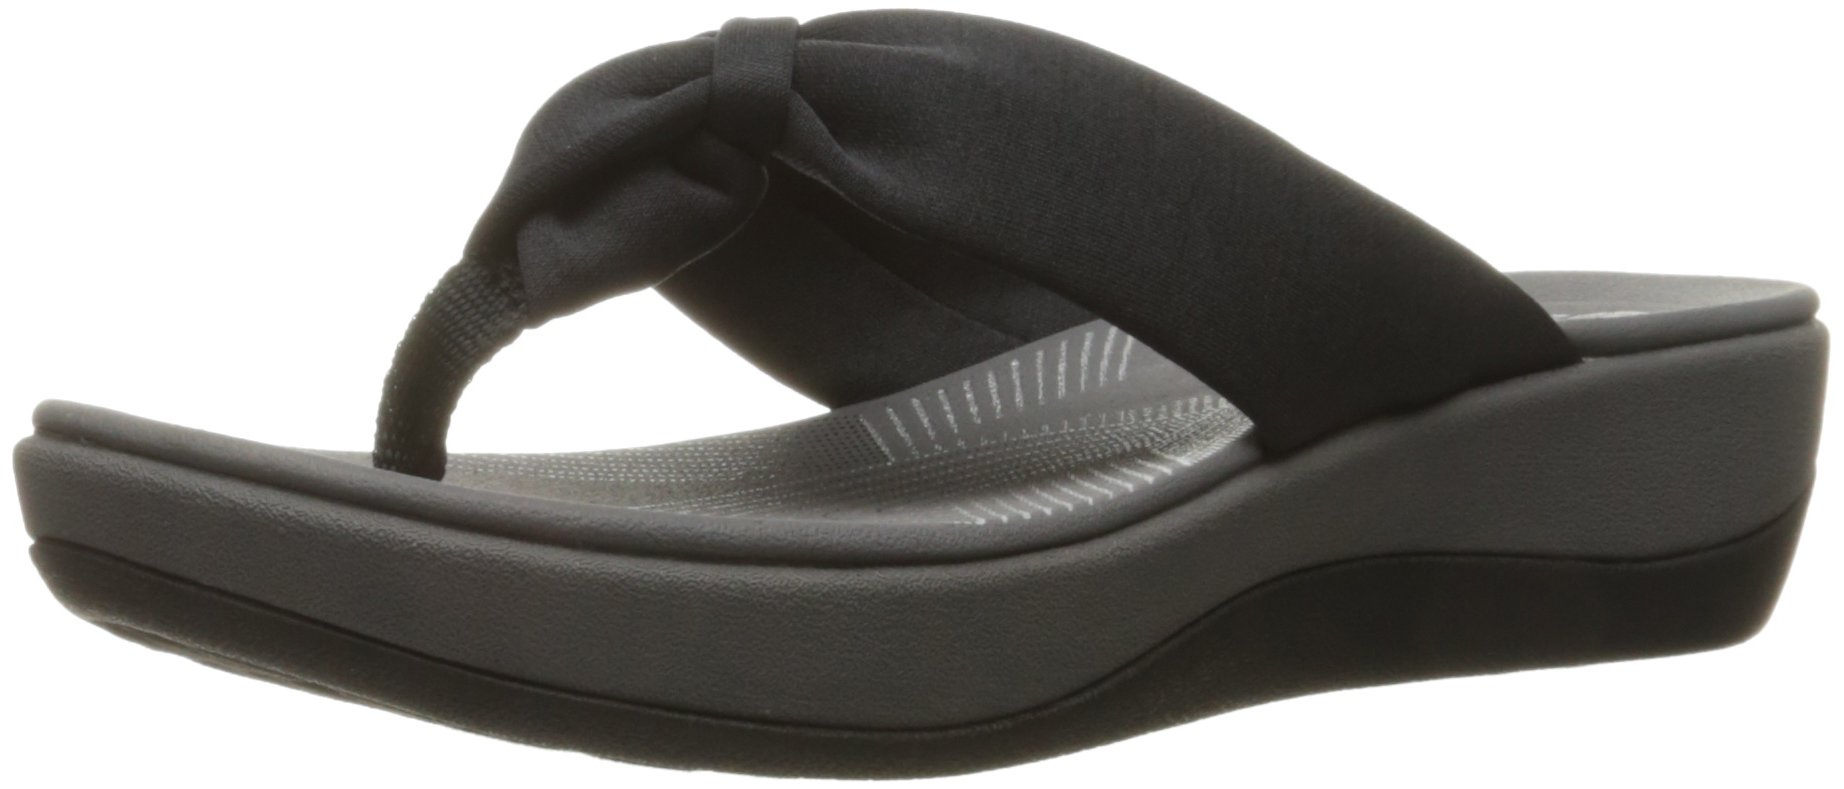 CLARKS Women's Arla Glison Flip-Flop, Black Fabric, 9 Medium US product  image